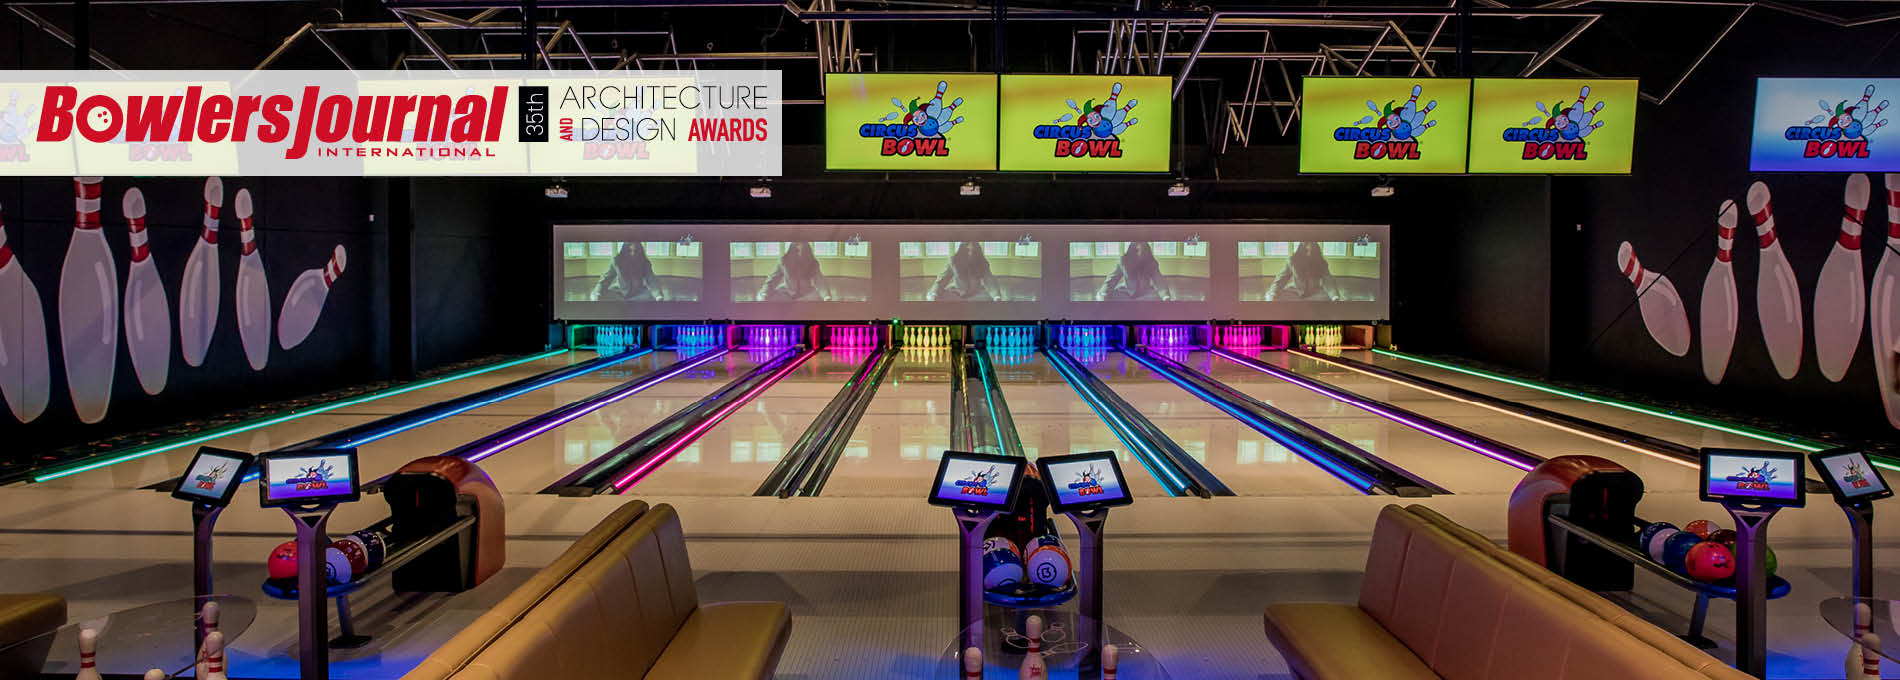 QubicaAMF bowling 35 architectual design awards home banner Circus Bowl